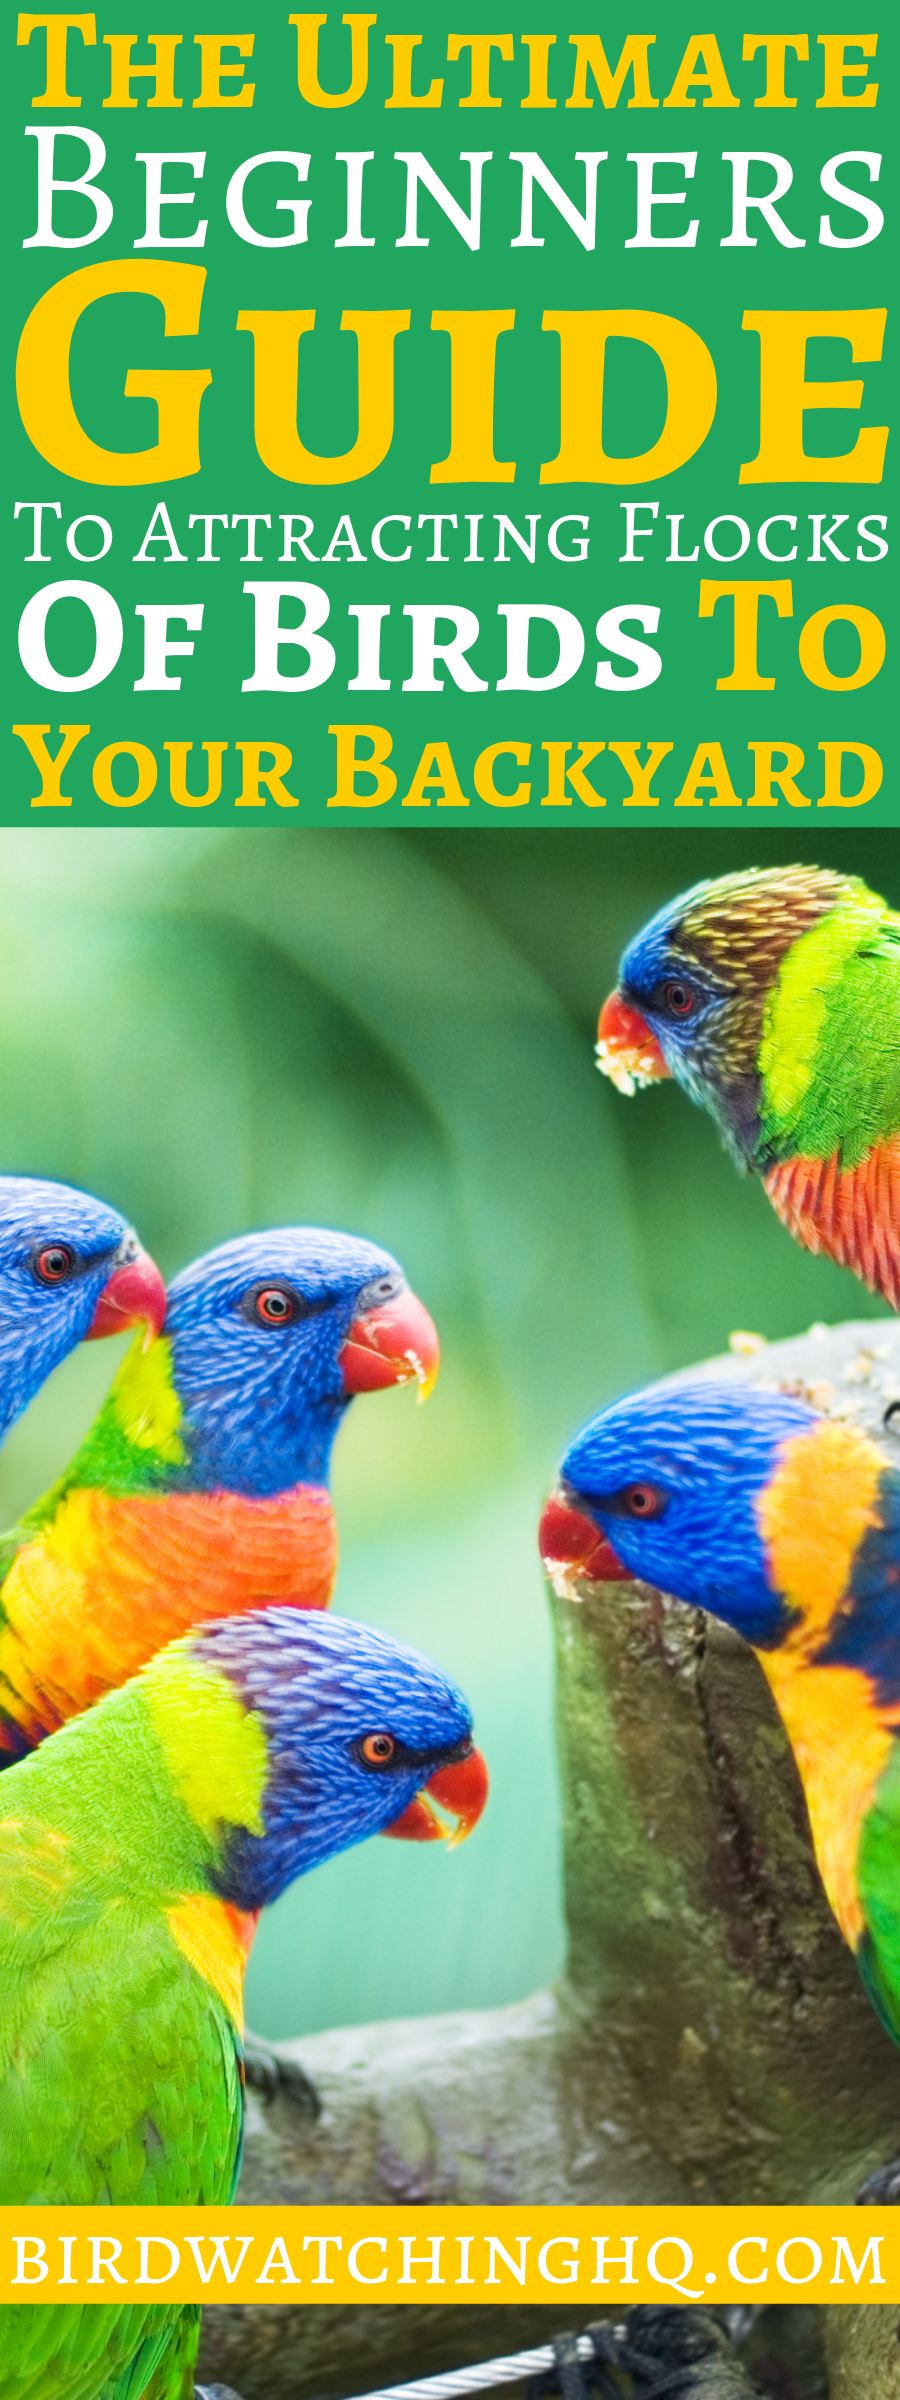 Attract Birds With These SIMPLE Strategies 2020 | How to ...